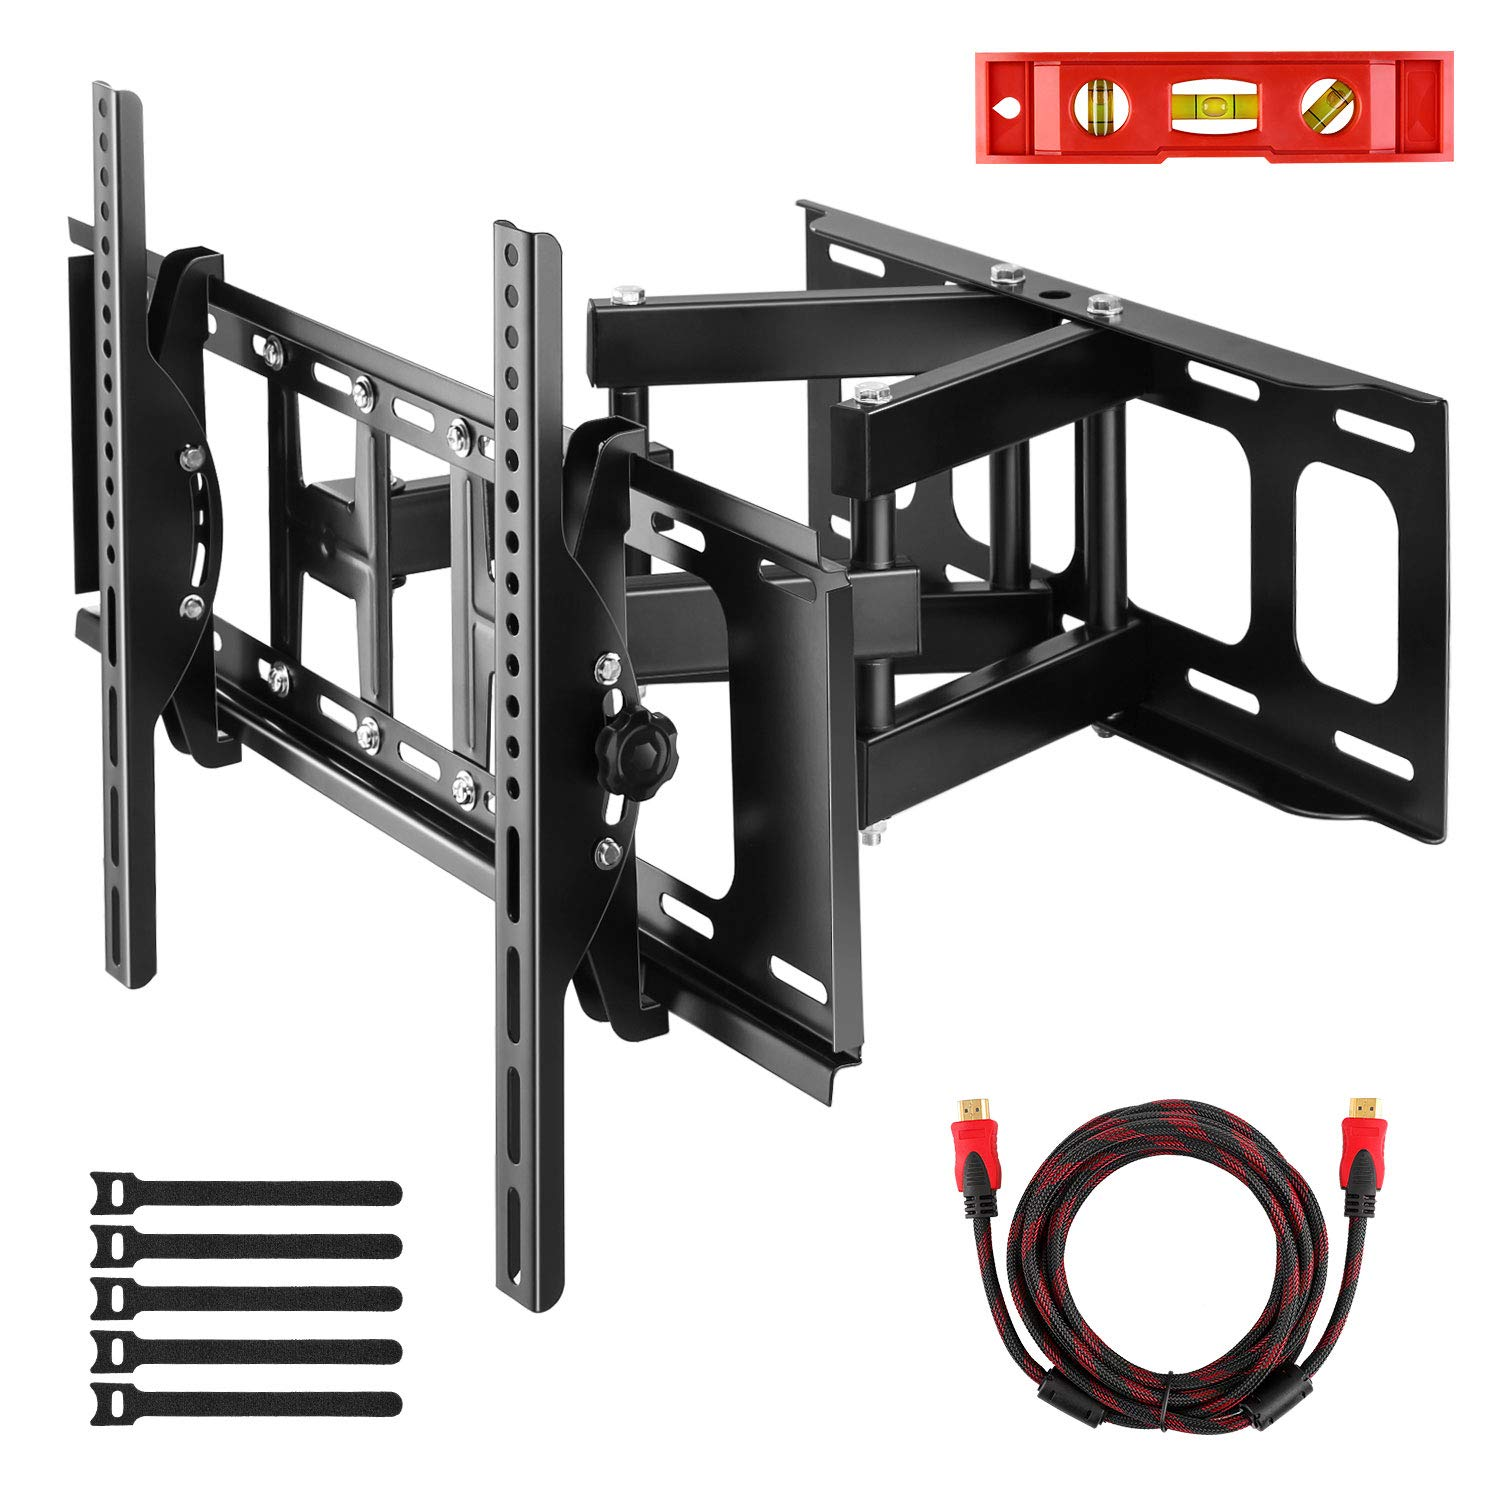 Yome Full Motion Articulating TV Wall Mount Extension Tilt Bracket for 37-70'' Flat Screen TV up to 121LB VESA 600x400 with Swivel Dual Arm, Fit 8/16/18'' Studs, Include 10'' HDMI Cable 6'' Magnetic Level